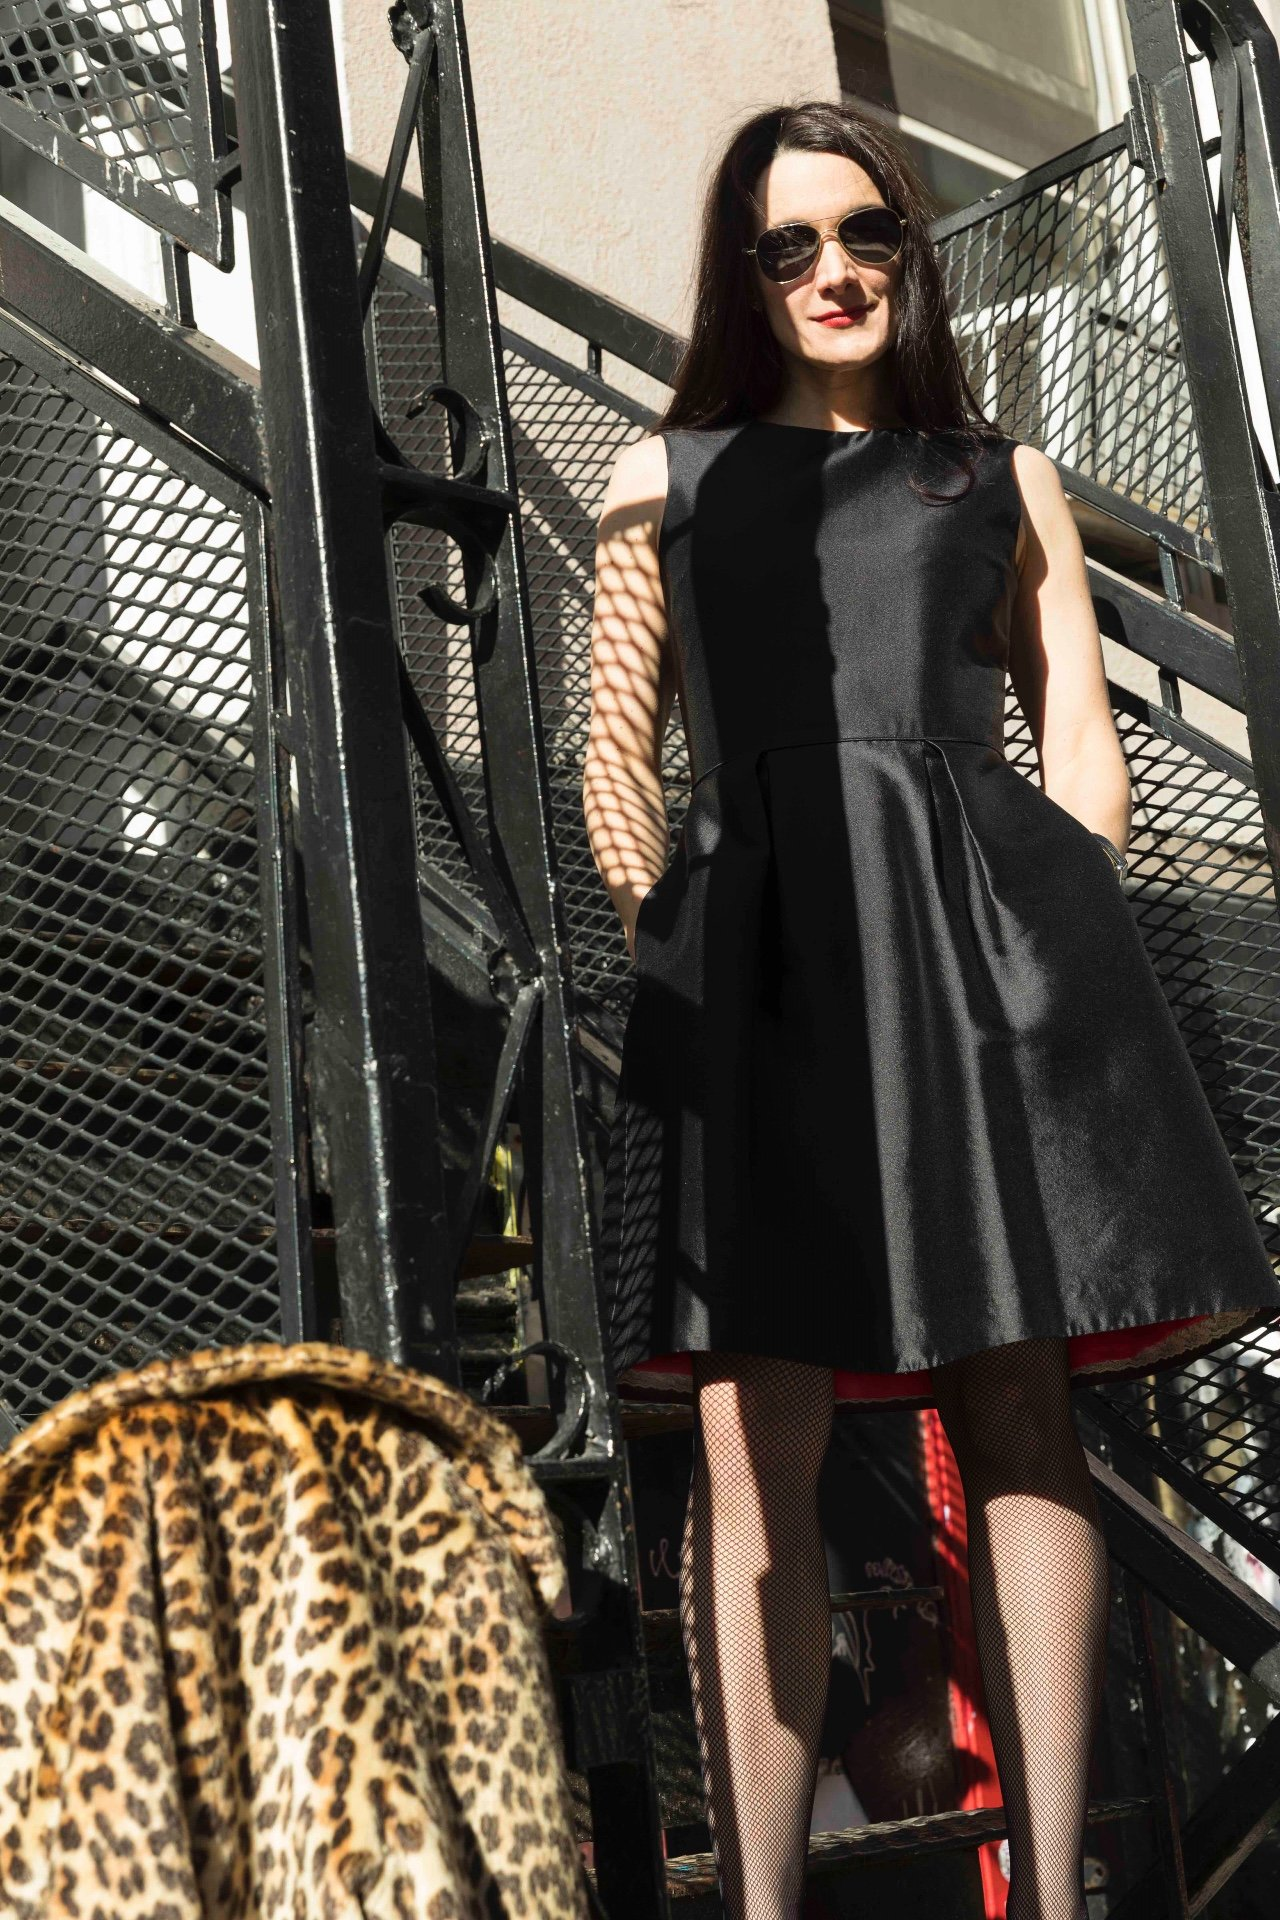 Women's Workwear: Day to Night Outfits for Real Women